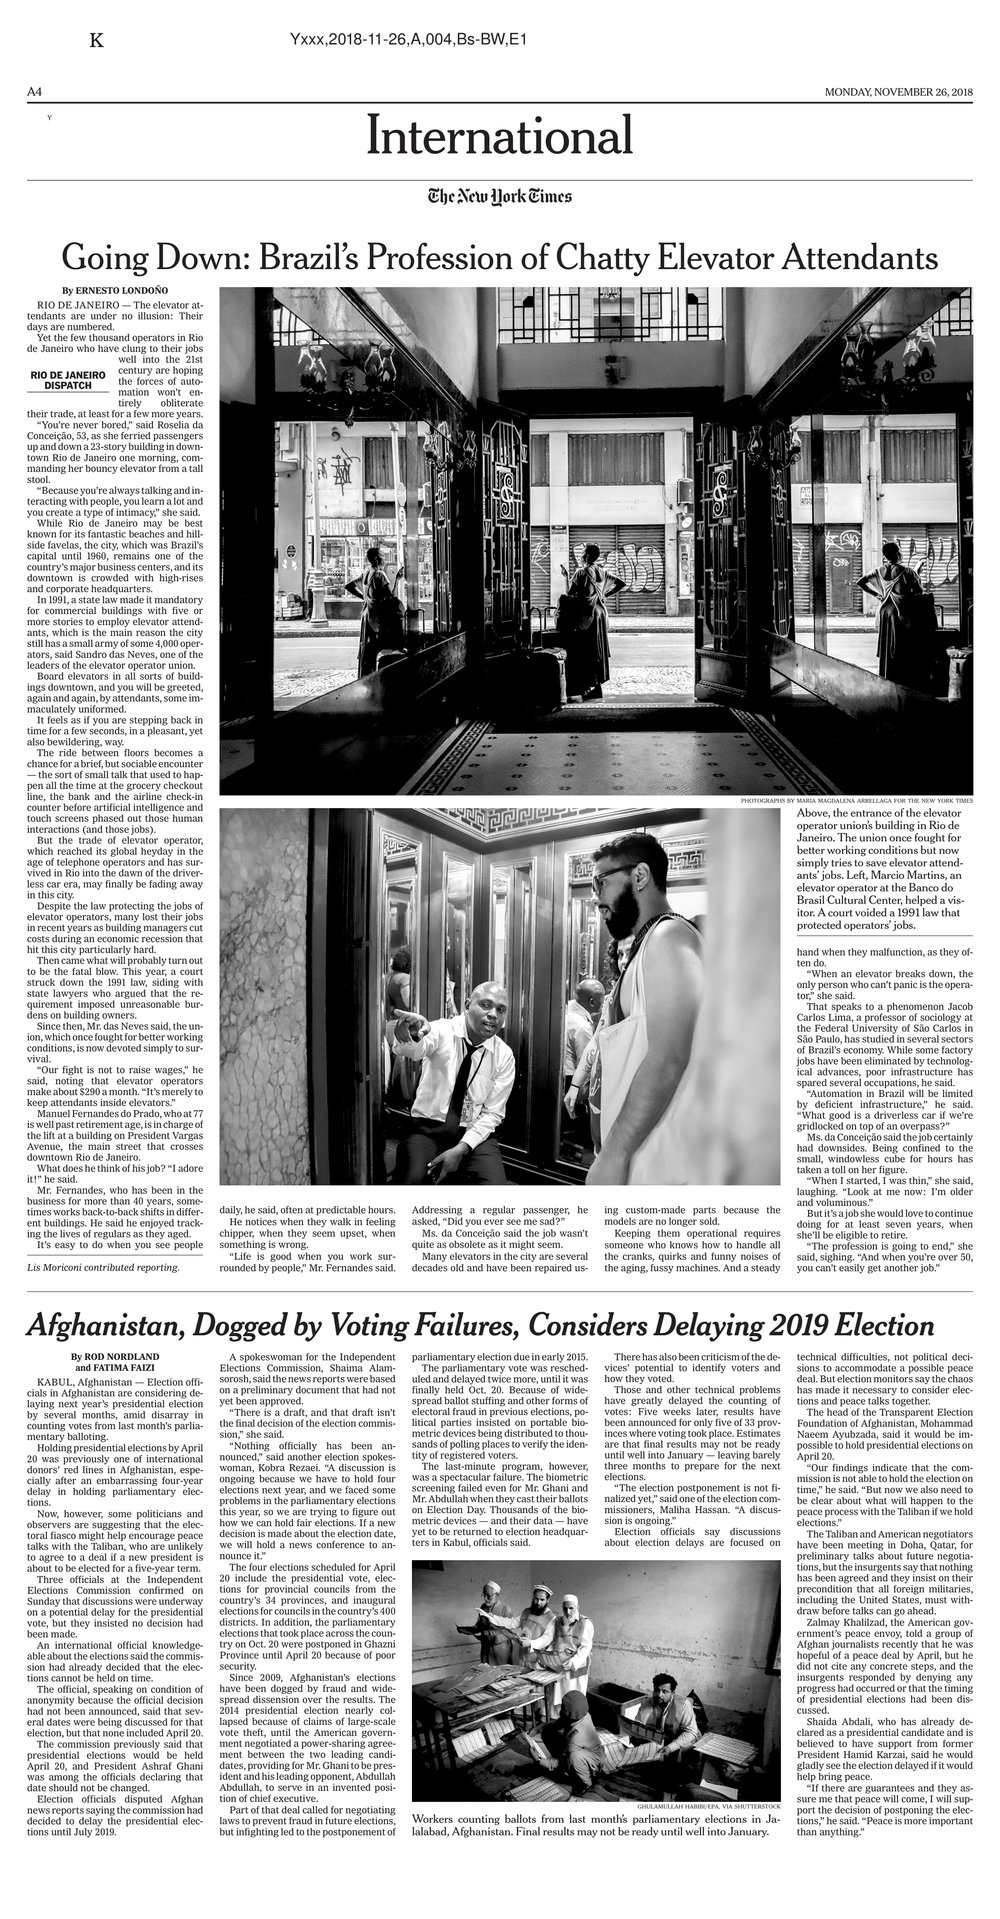 Work for The New York Times following a day in the life of elevator workers in downtown Rio de Janeiro:  https://www.nytimes.com/2018/11/25/world/americas/brazil-rio-de-janeiro-elevator-attendants.html